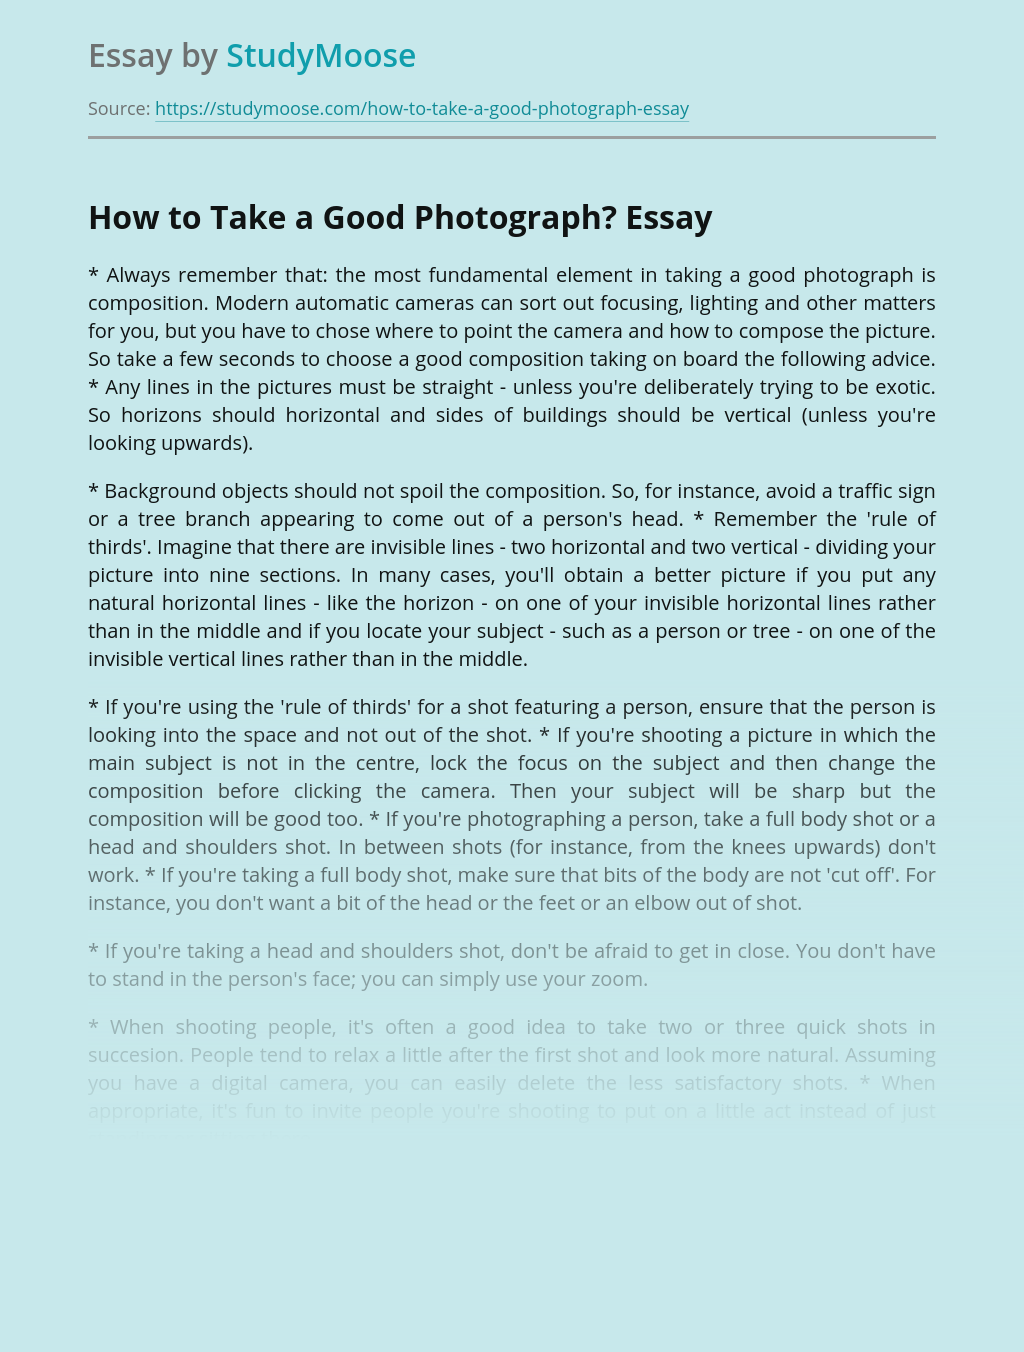 How to Take a Good Photograph?